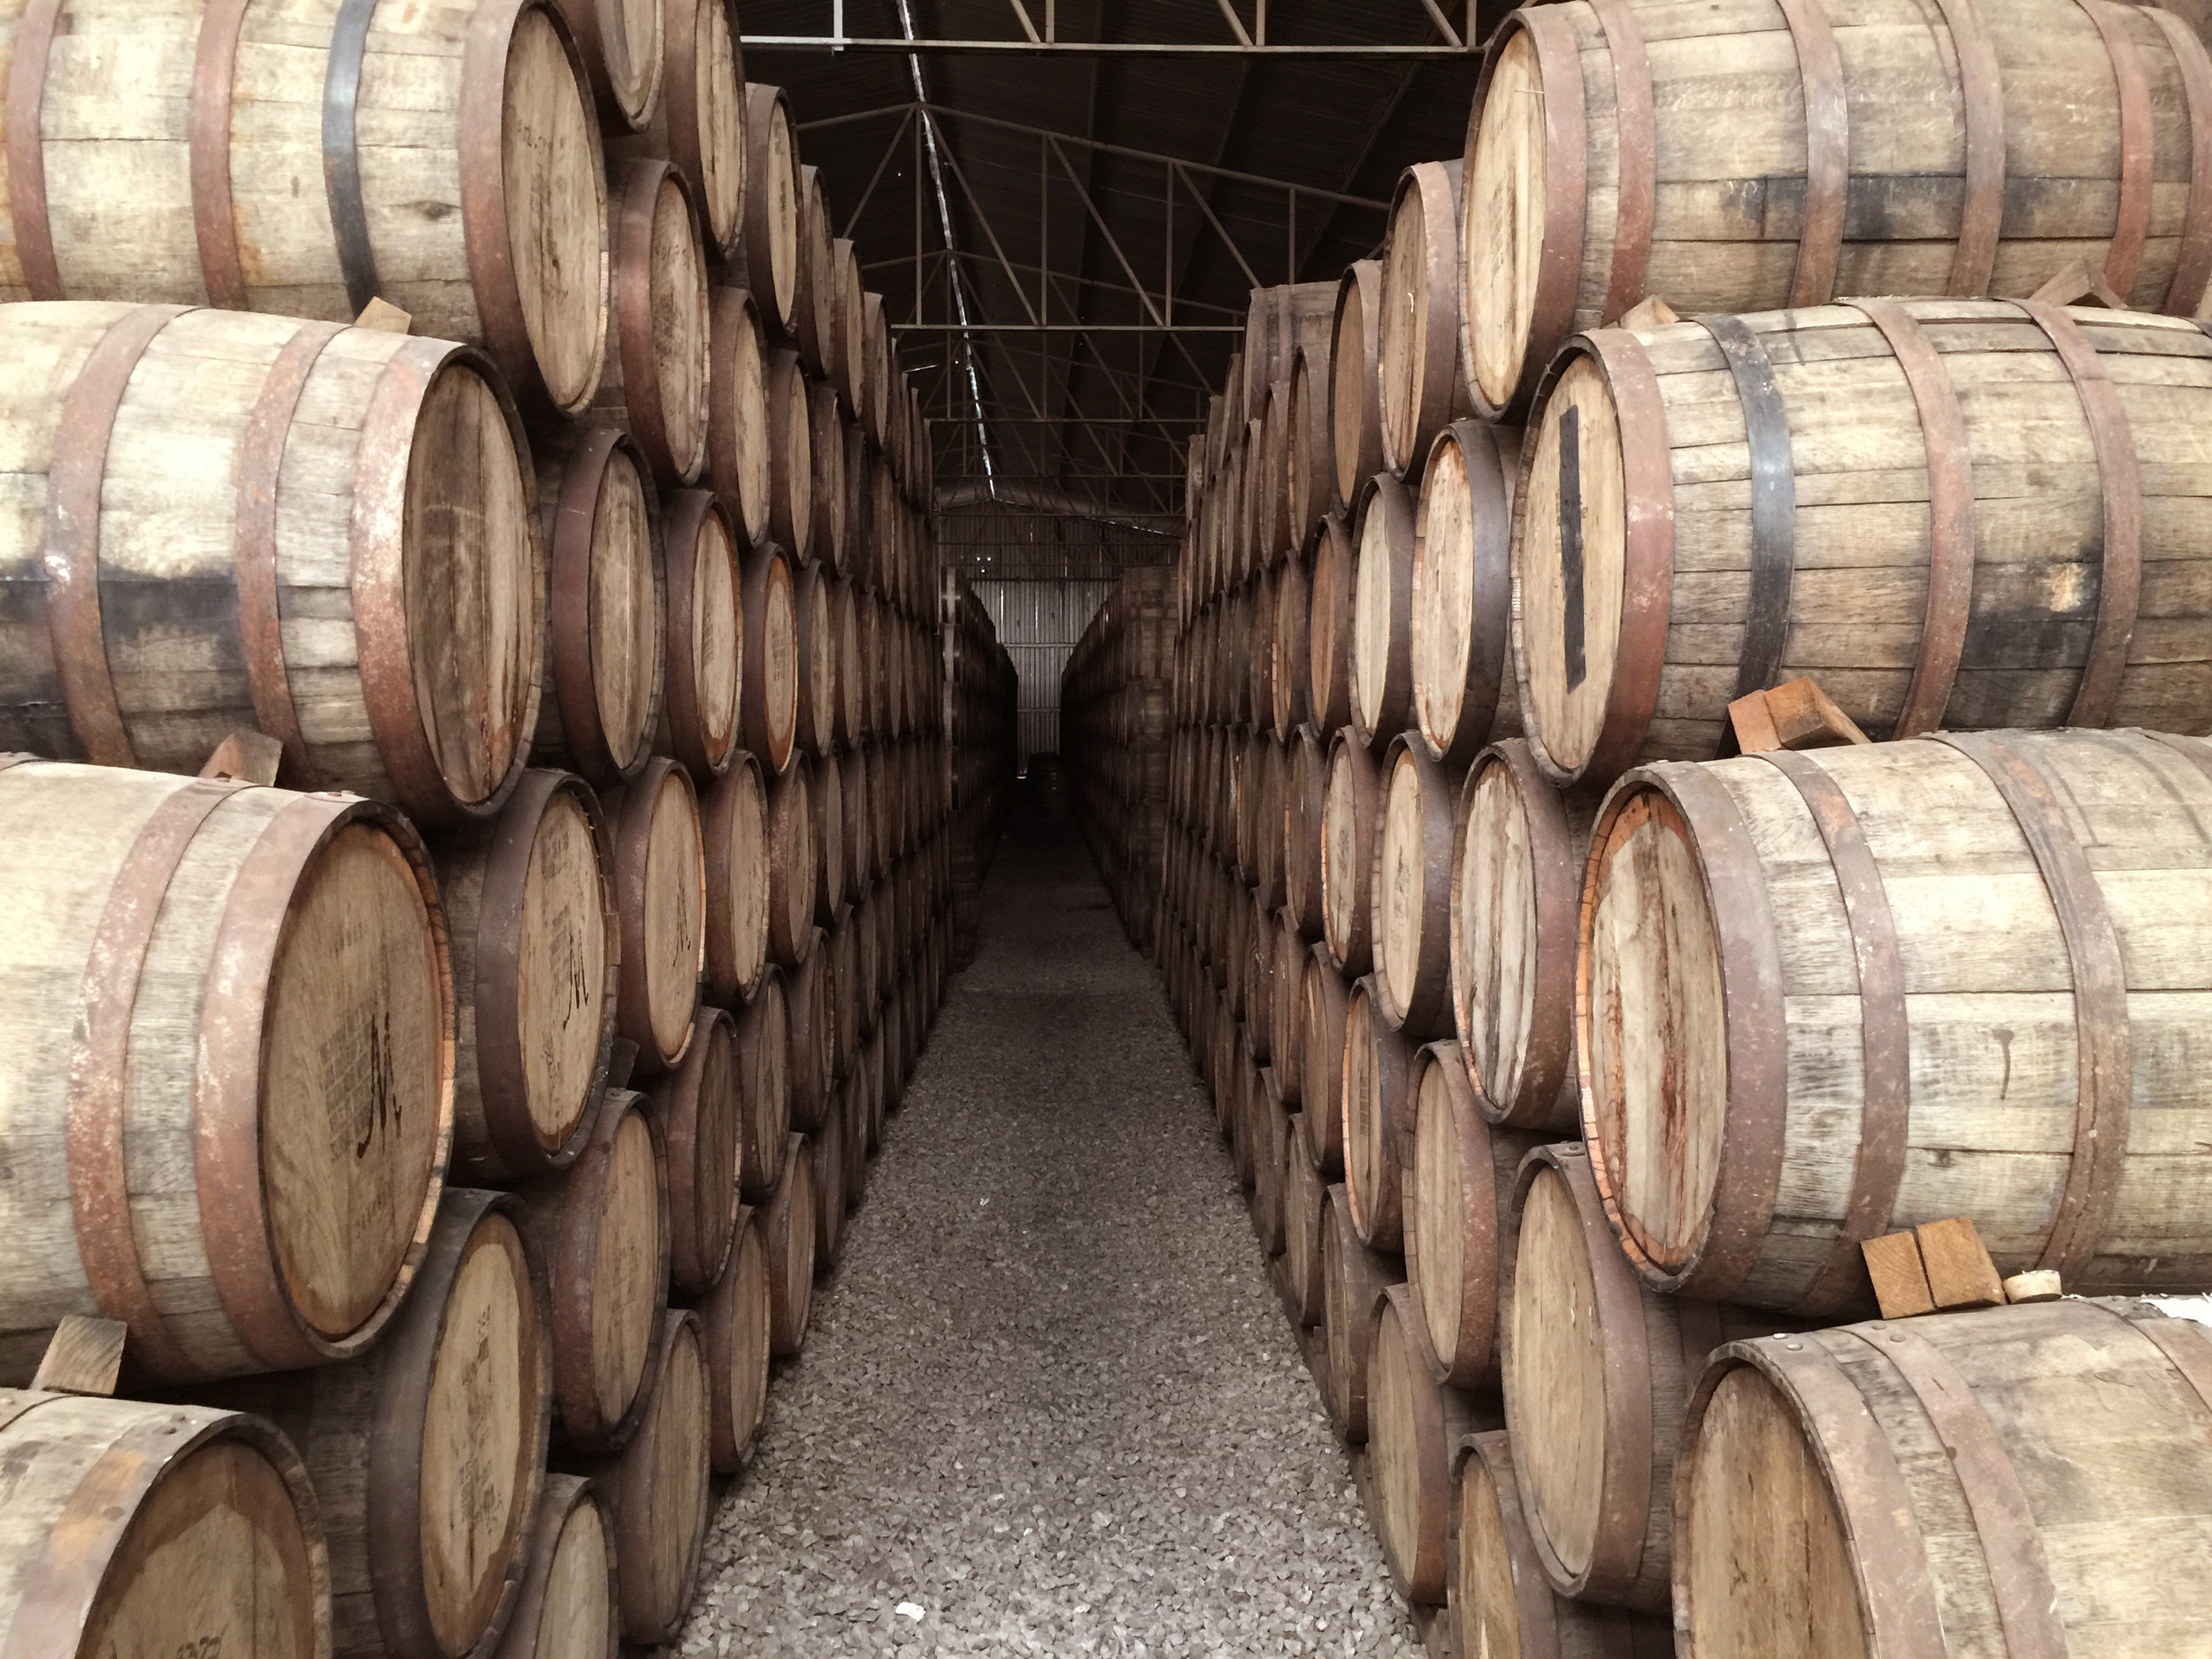 Pitlochry Whisky barrels - salvage aged oak